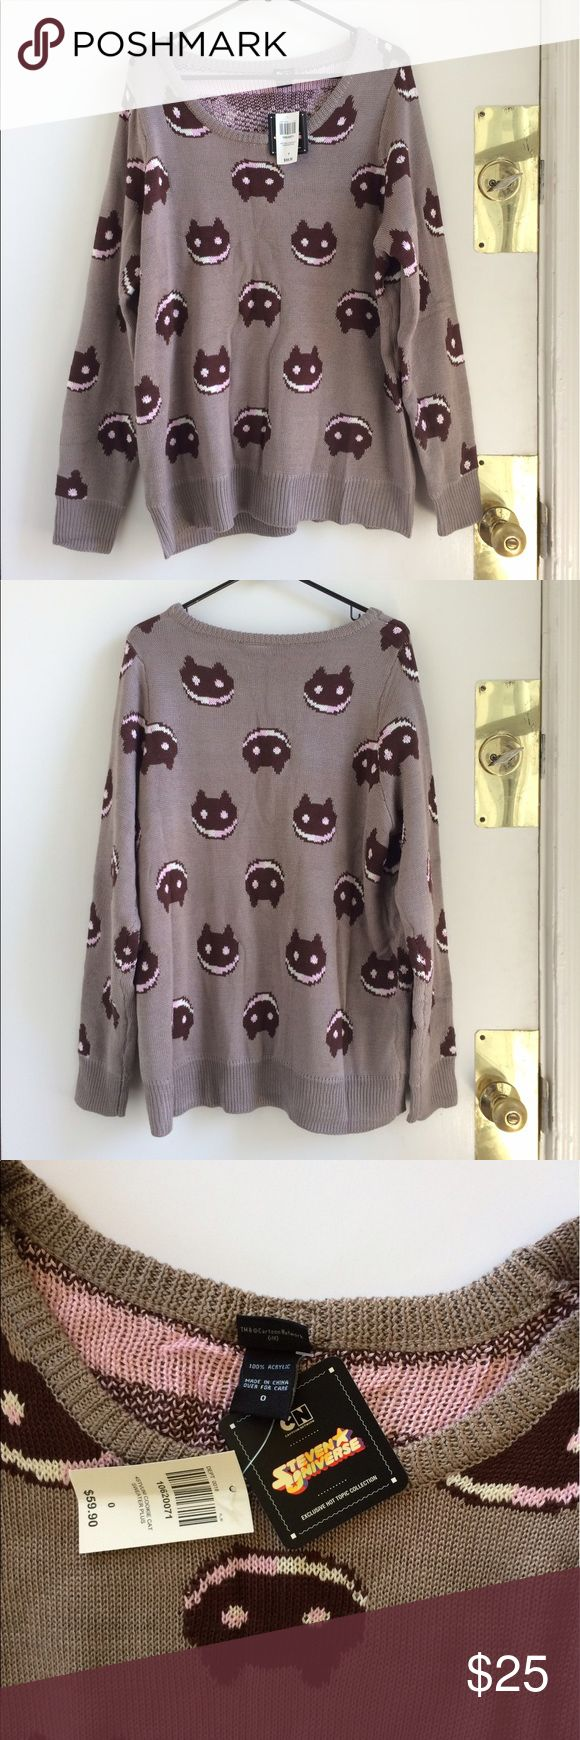 "Steven Universe Cookie Cat Sweater(Hot Topic 0/XL) New with tags Steven Universe Cookie Cat sweater, officially licensed through Hot Topic. Plus size 0 which about the same as a generous XL. Knit is thick and soft. (Measurements: chest 24"", length 28"") Hot Topic Sweaters Crew & Scoop Necks"